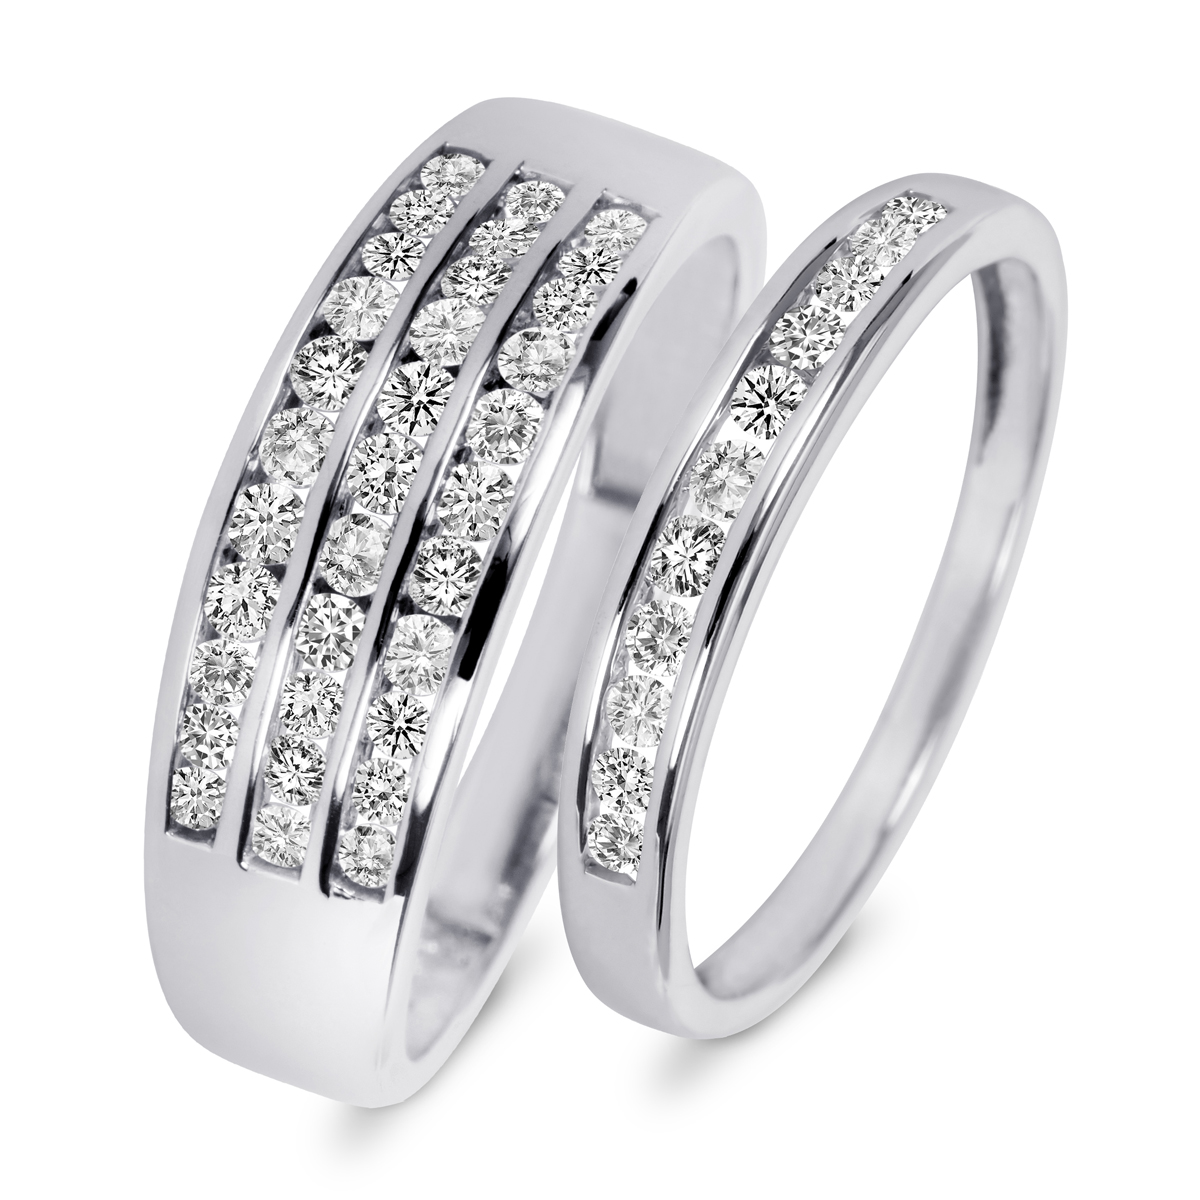 78 Carat TW Diamond His And Hers Wedding Rings 14K White Gold